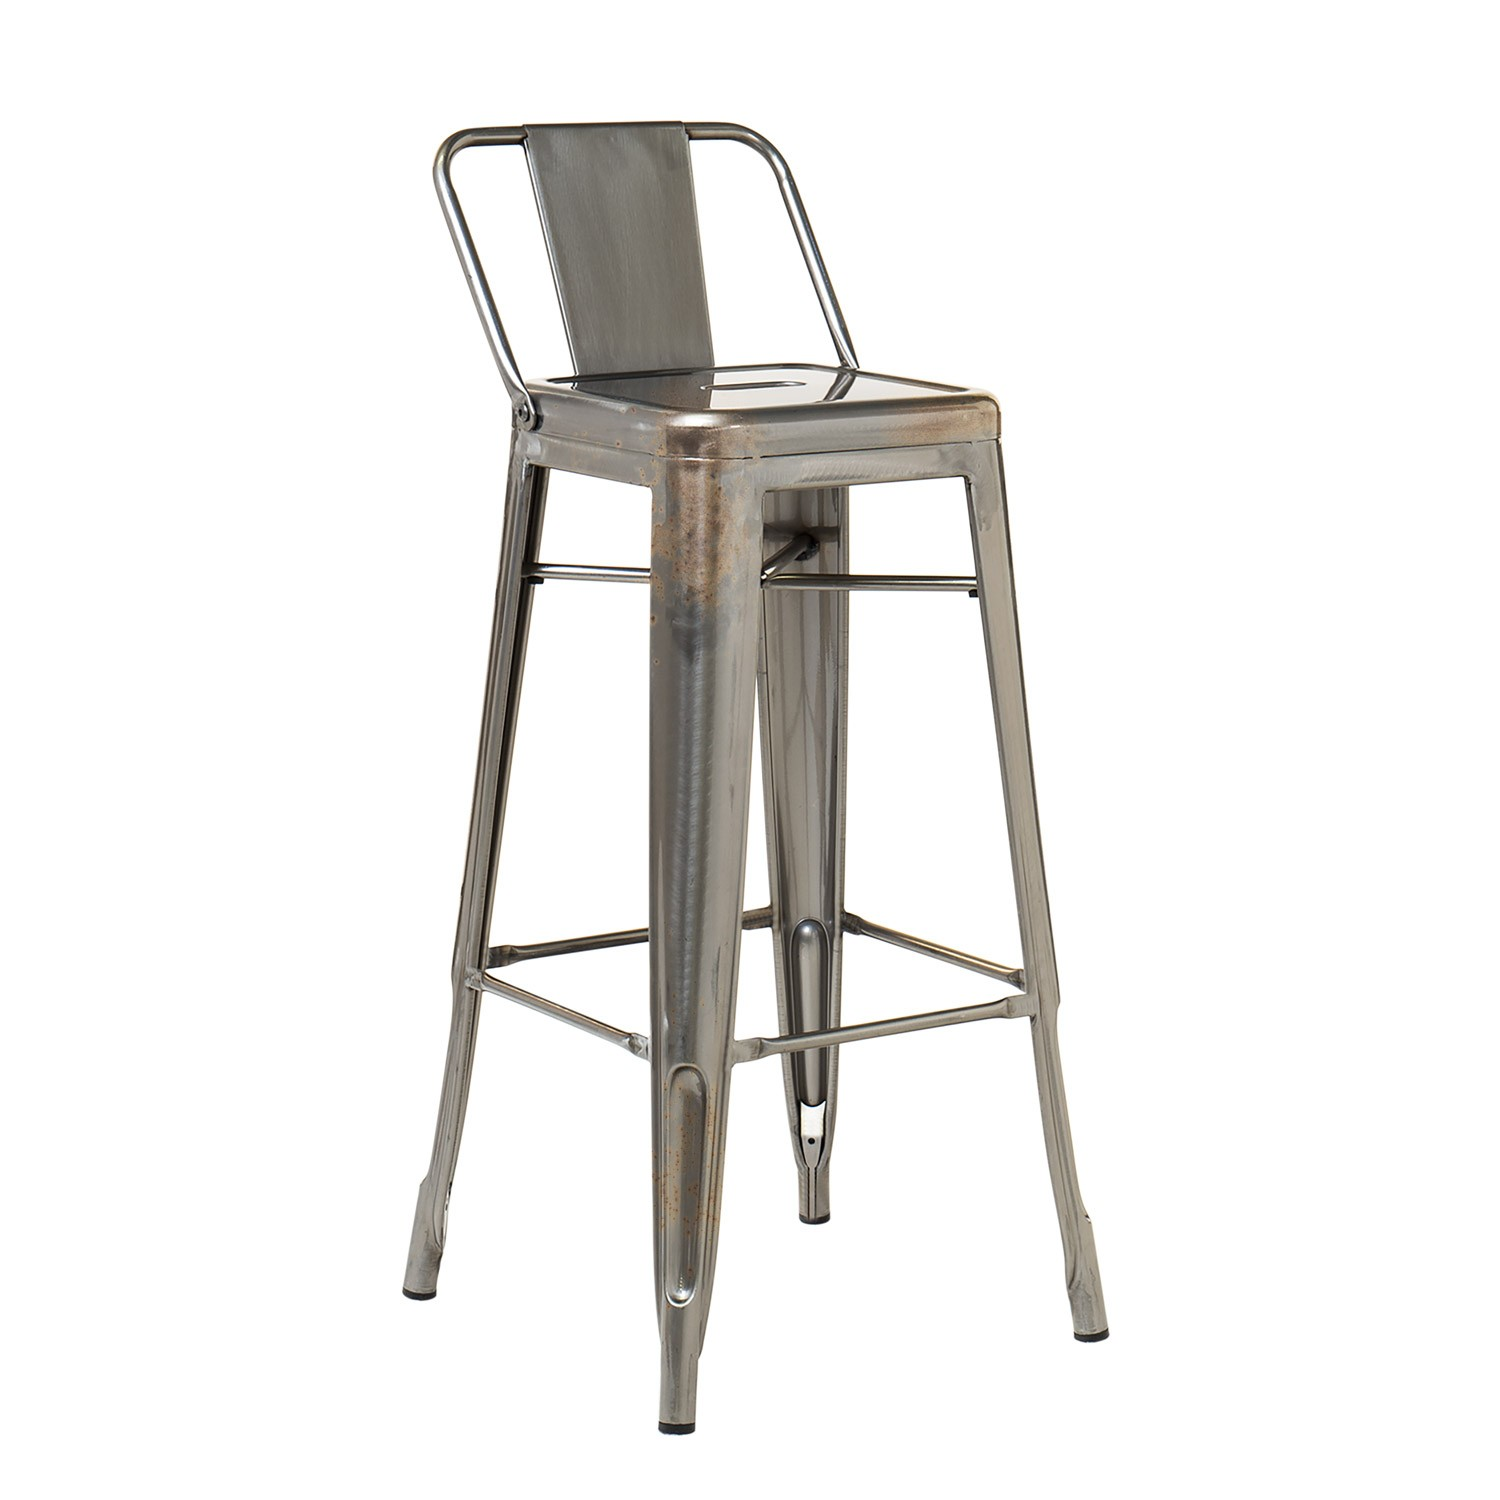 High Stool with back in Brushed LIX Steel, gallery image 1